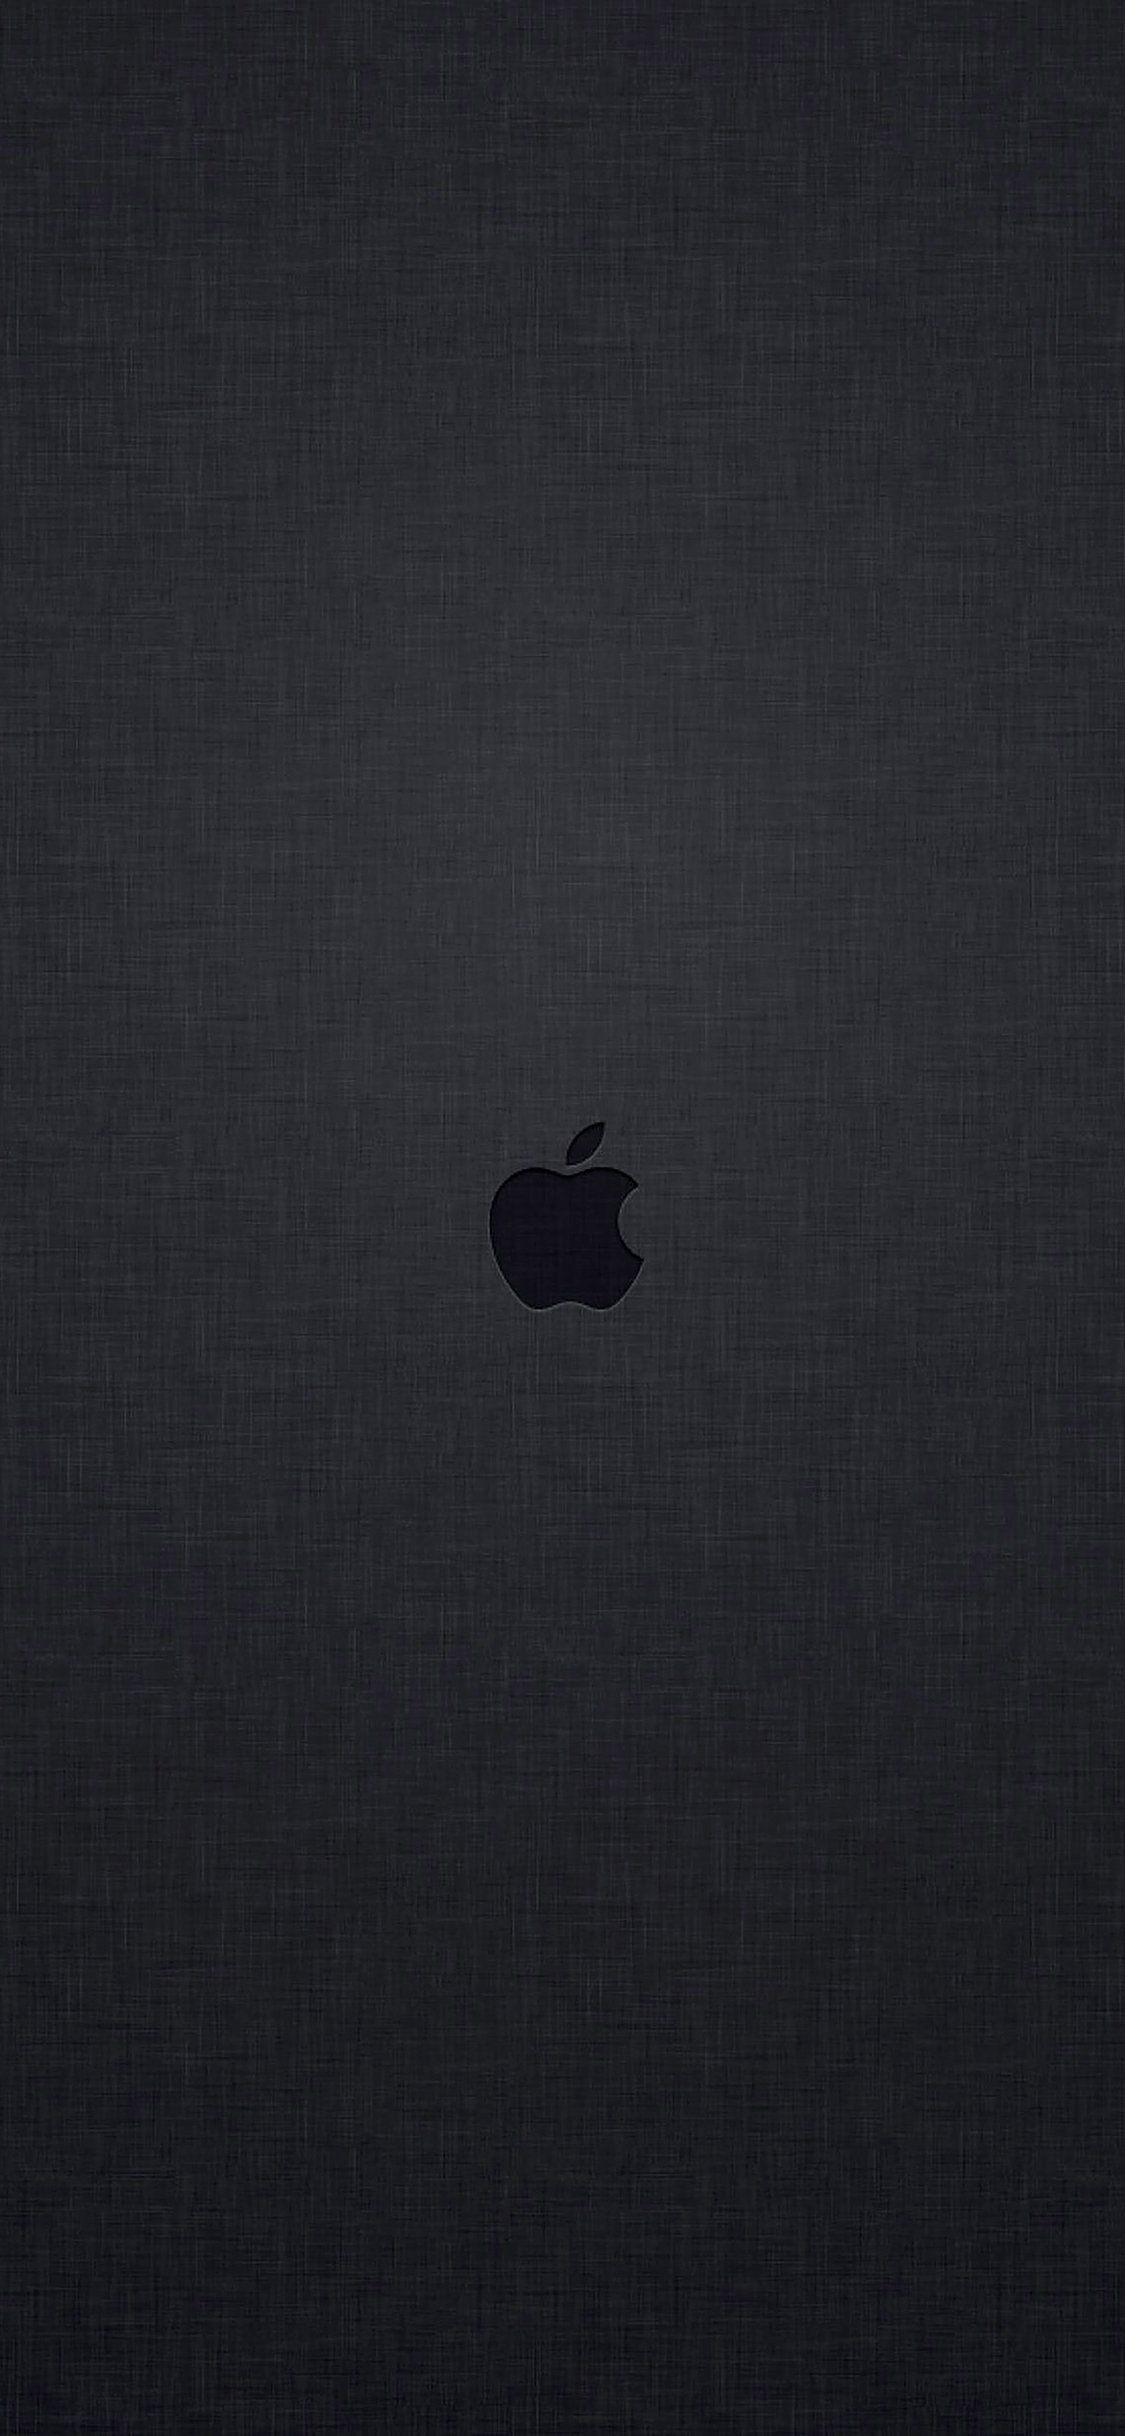 Apple Logo Iphone Wallpapers Top Free Apple Logo Iphone Backgrounds Wallpaperaccess